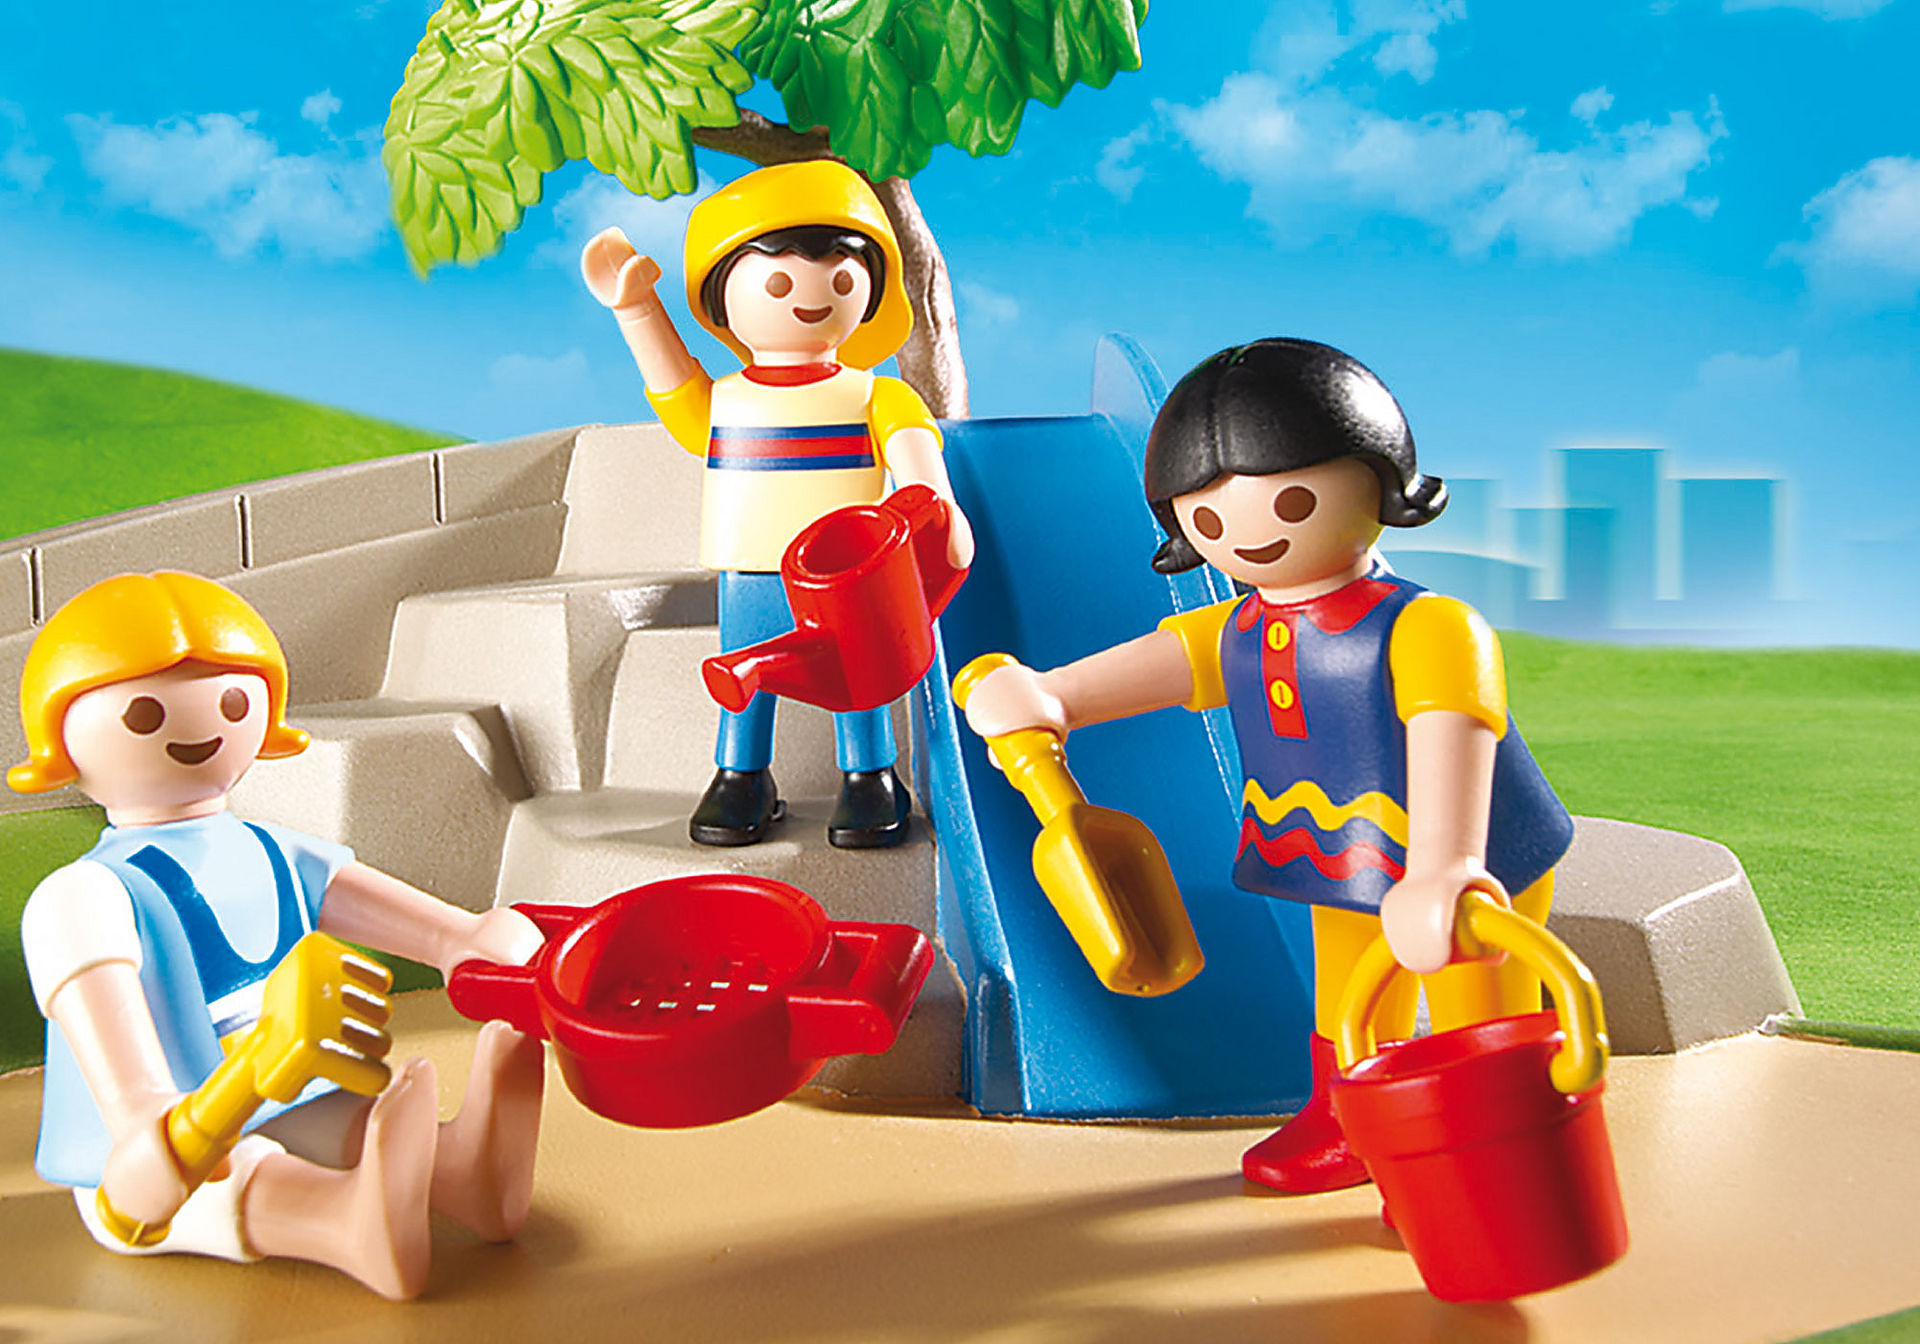 http://media.playmobil.com/i/playmobil/4132_product_extra3/SuperSet Spielplatz